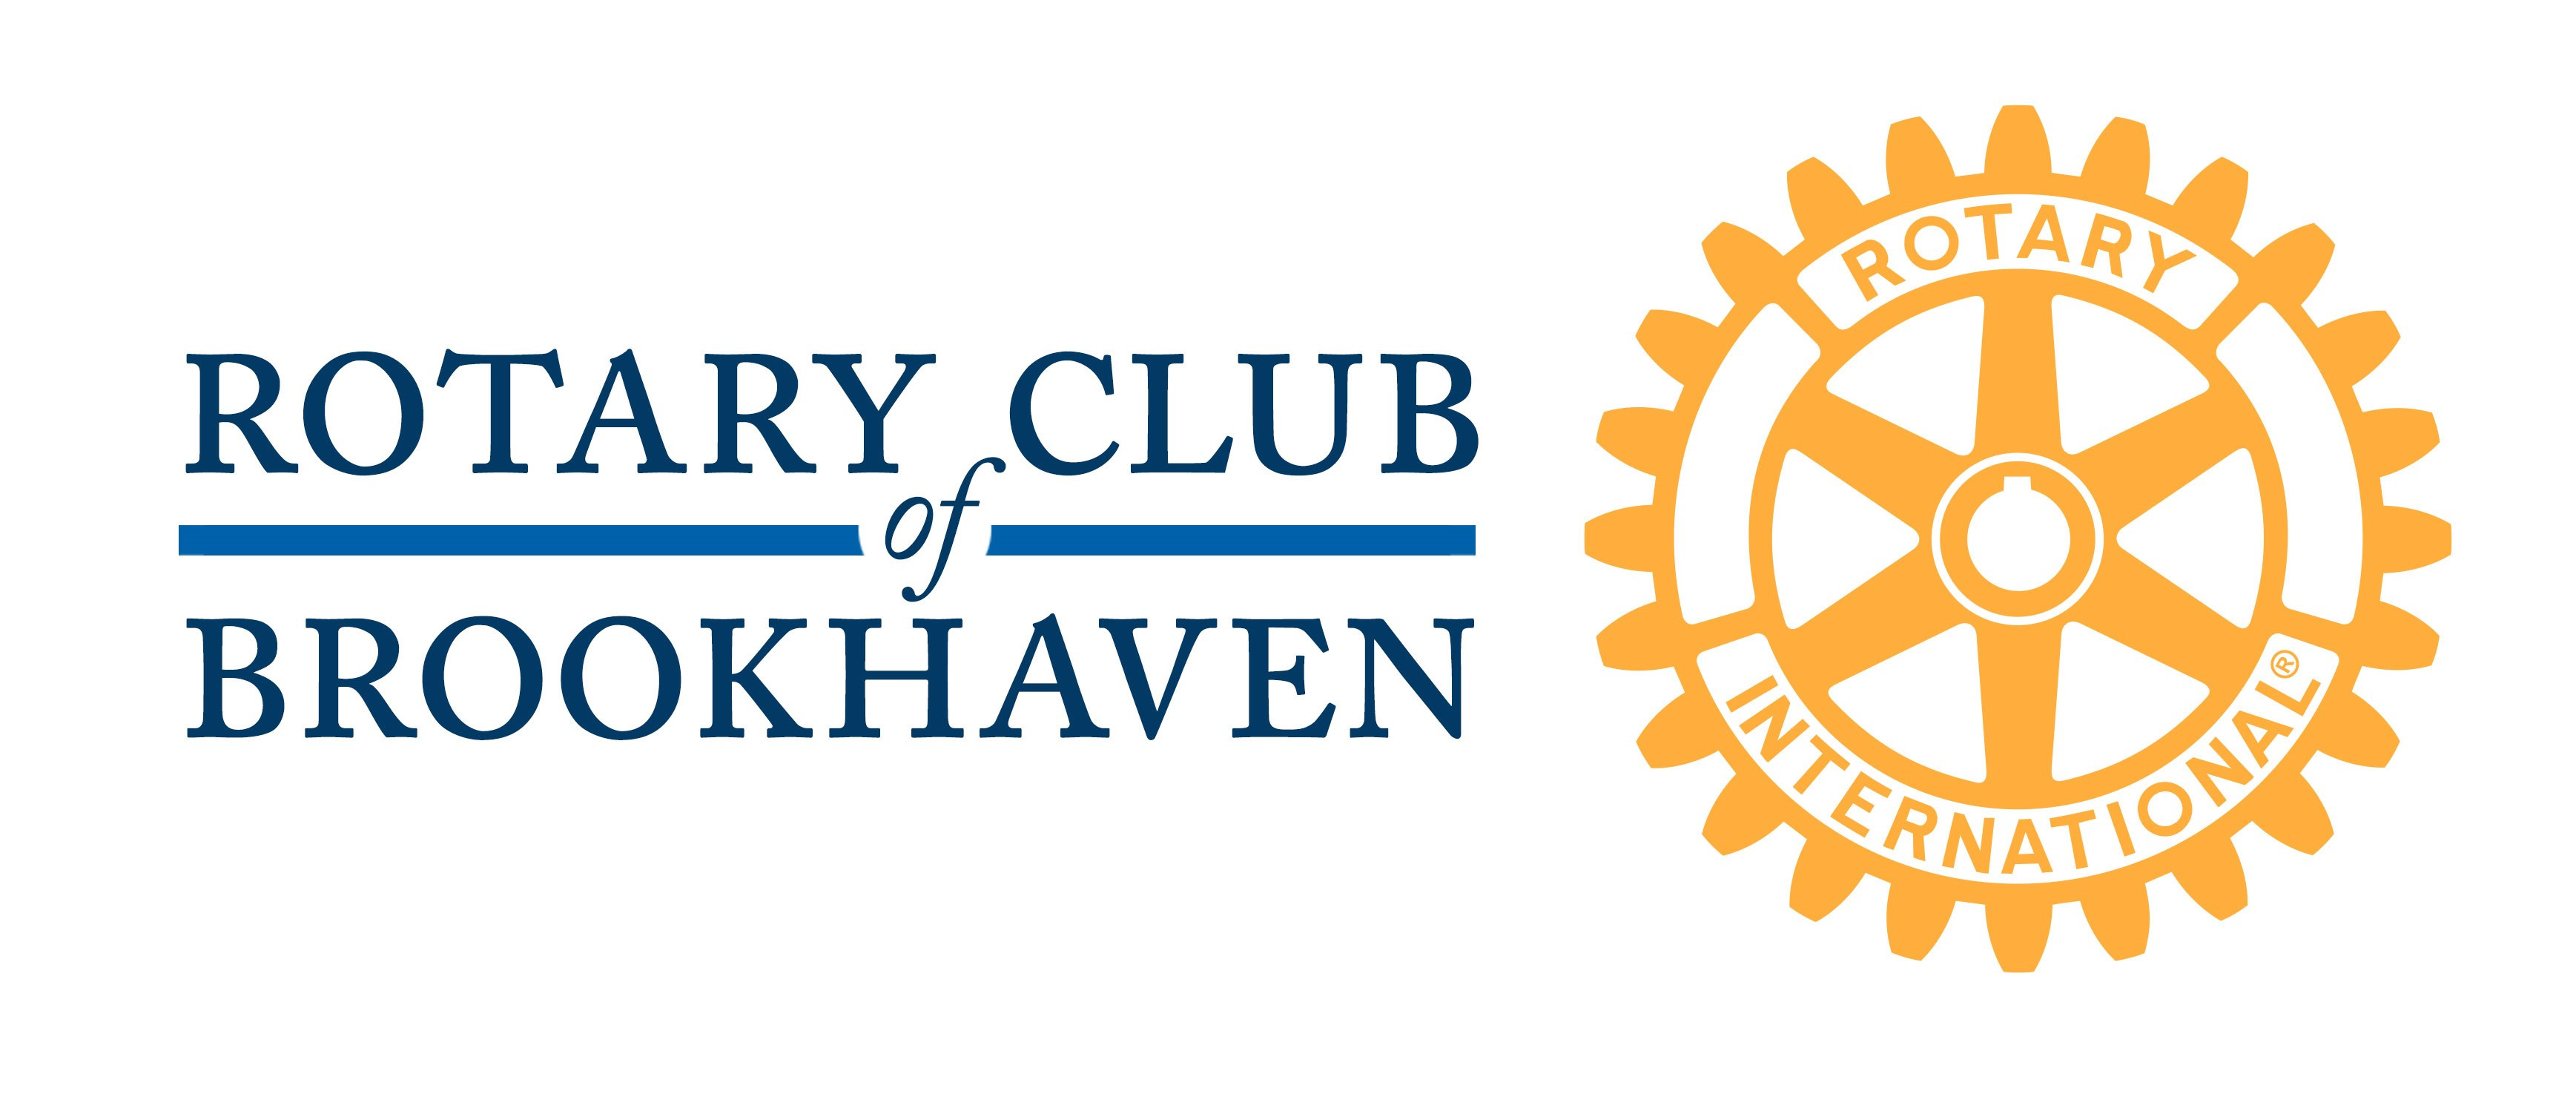 Silver_Rotary Club of Brookhaven